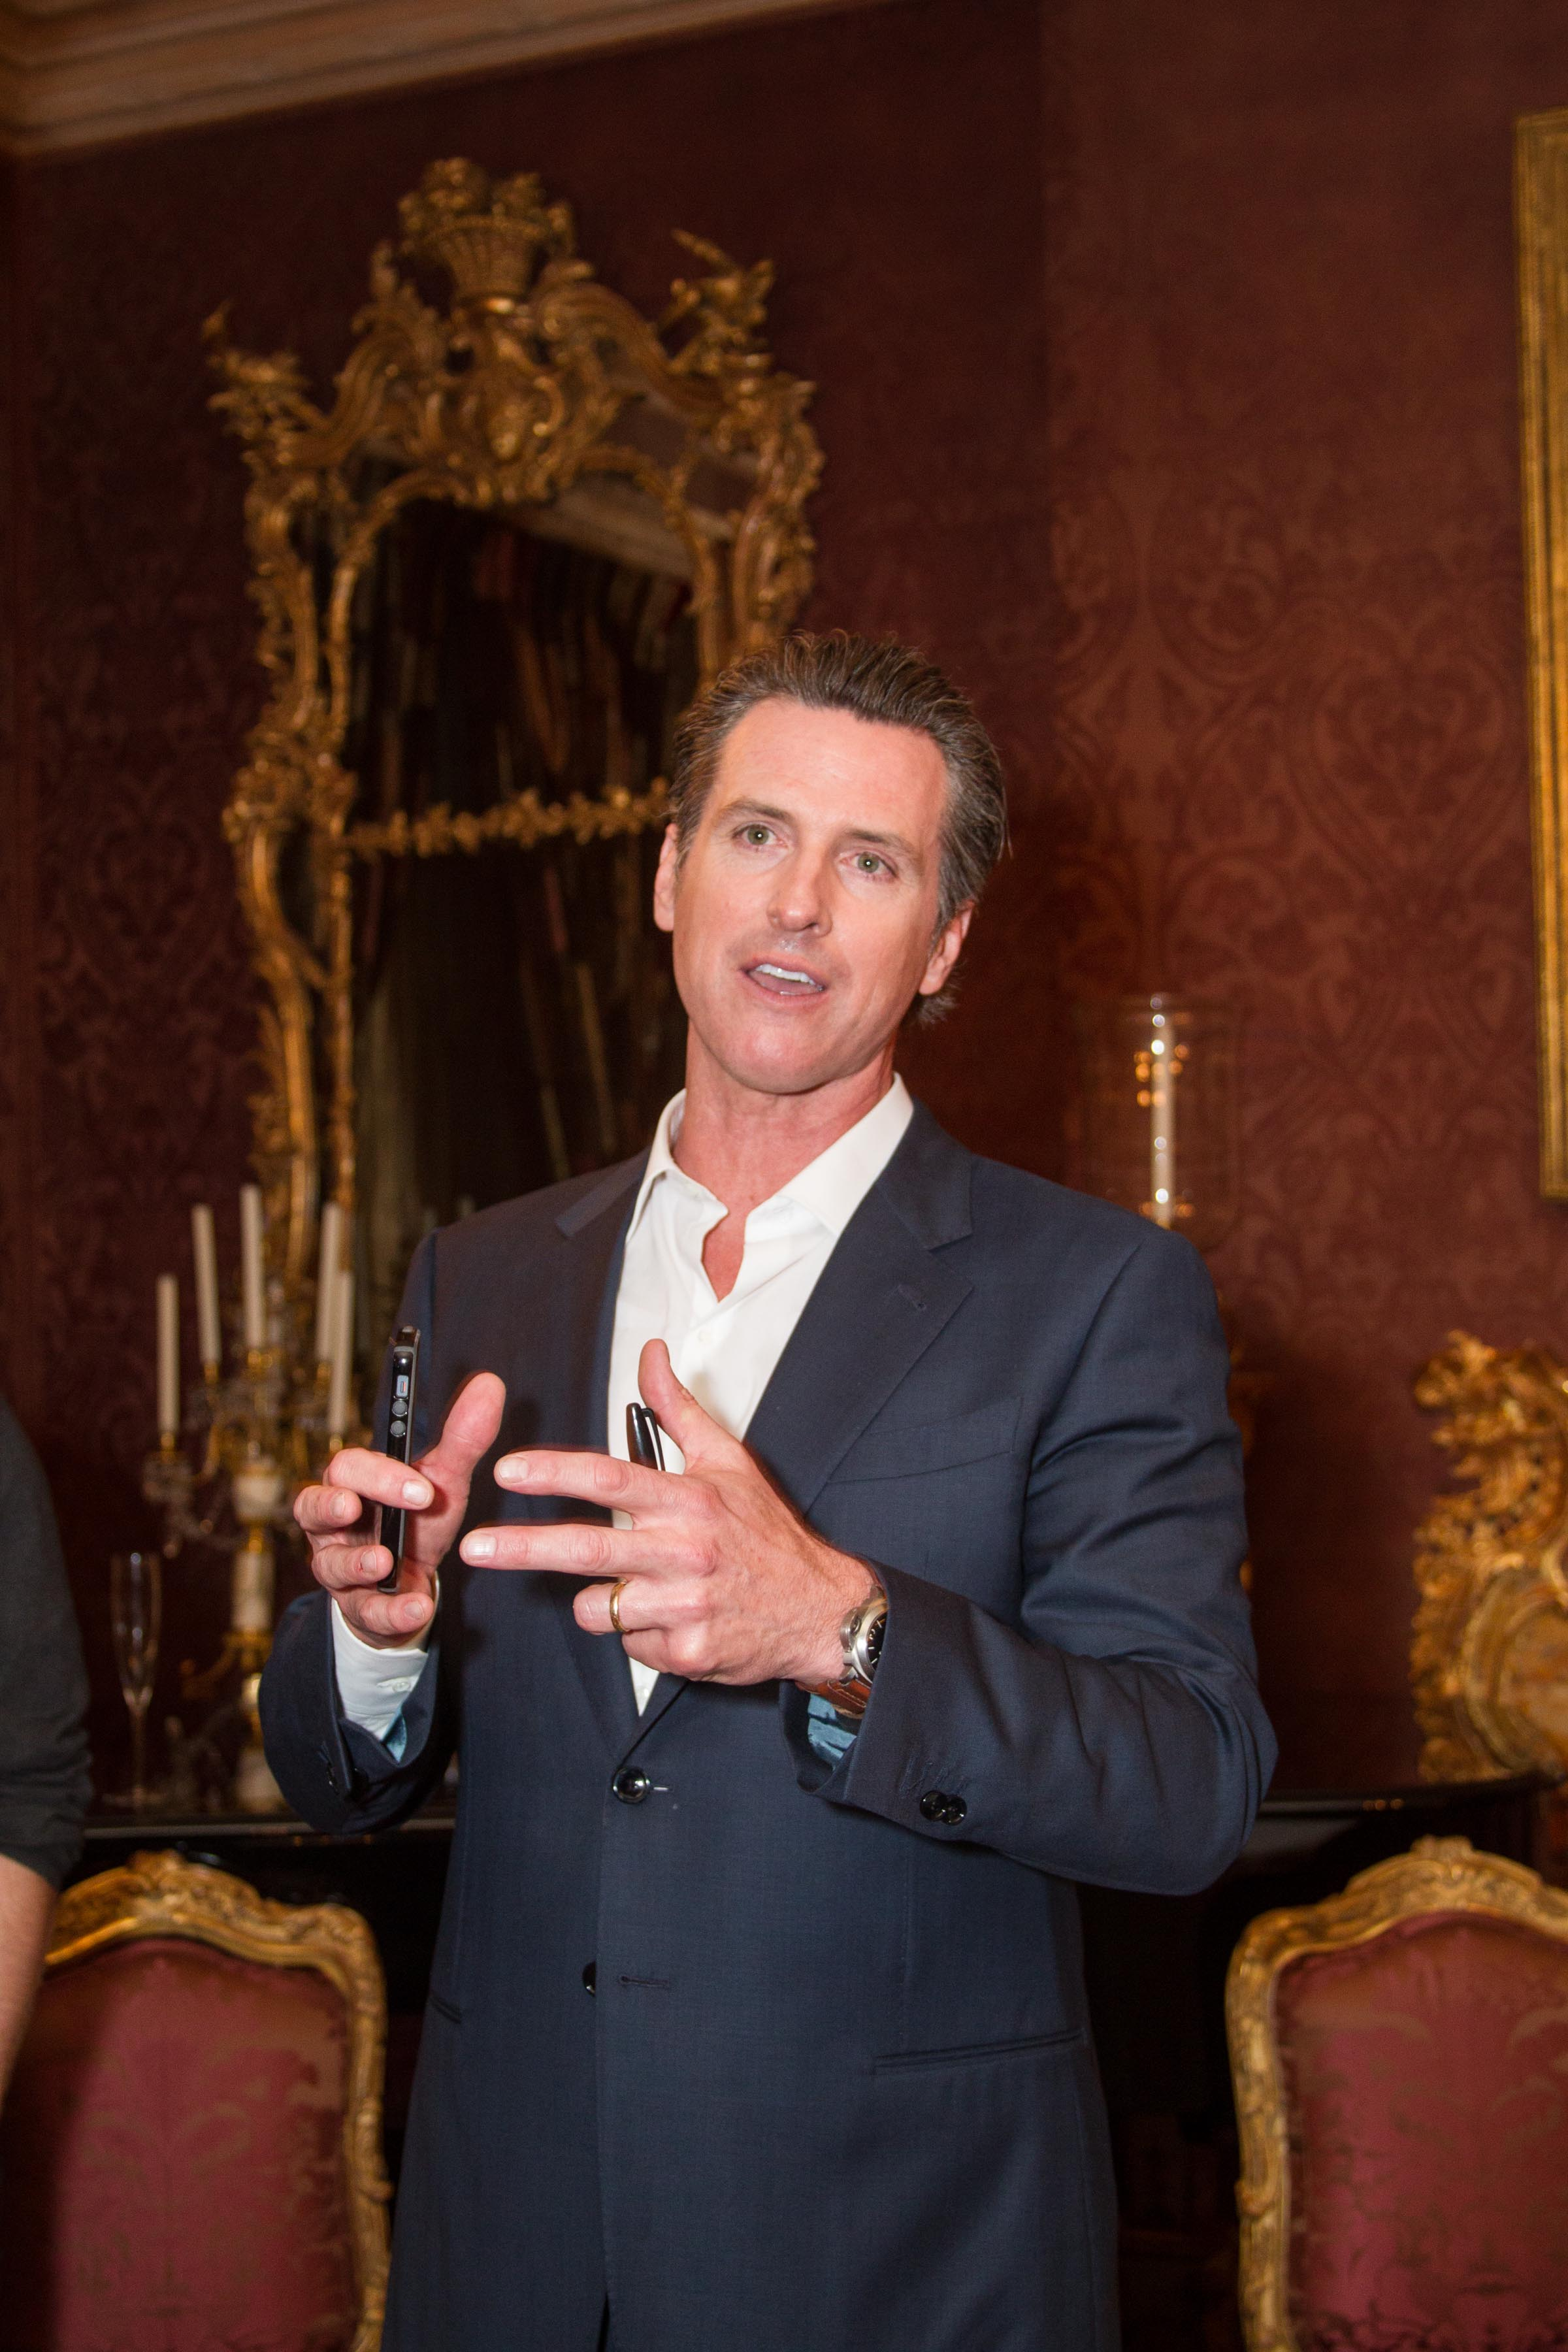 Gavin Newsom Speaks at His Book Launch, Held at the Home of Ann and Gordon Getty